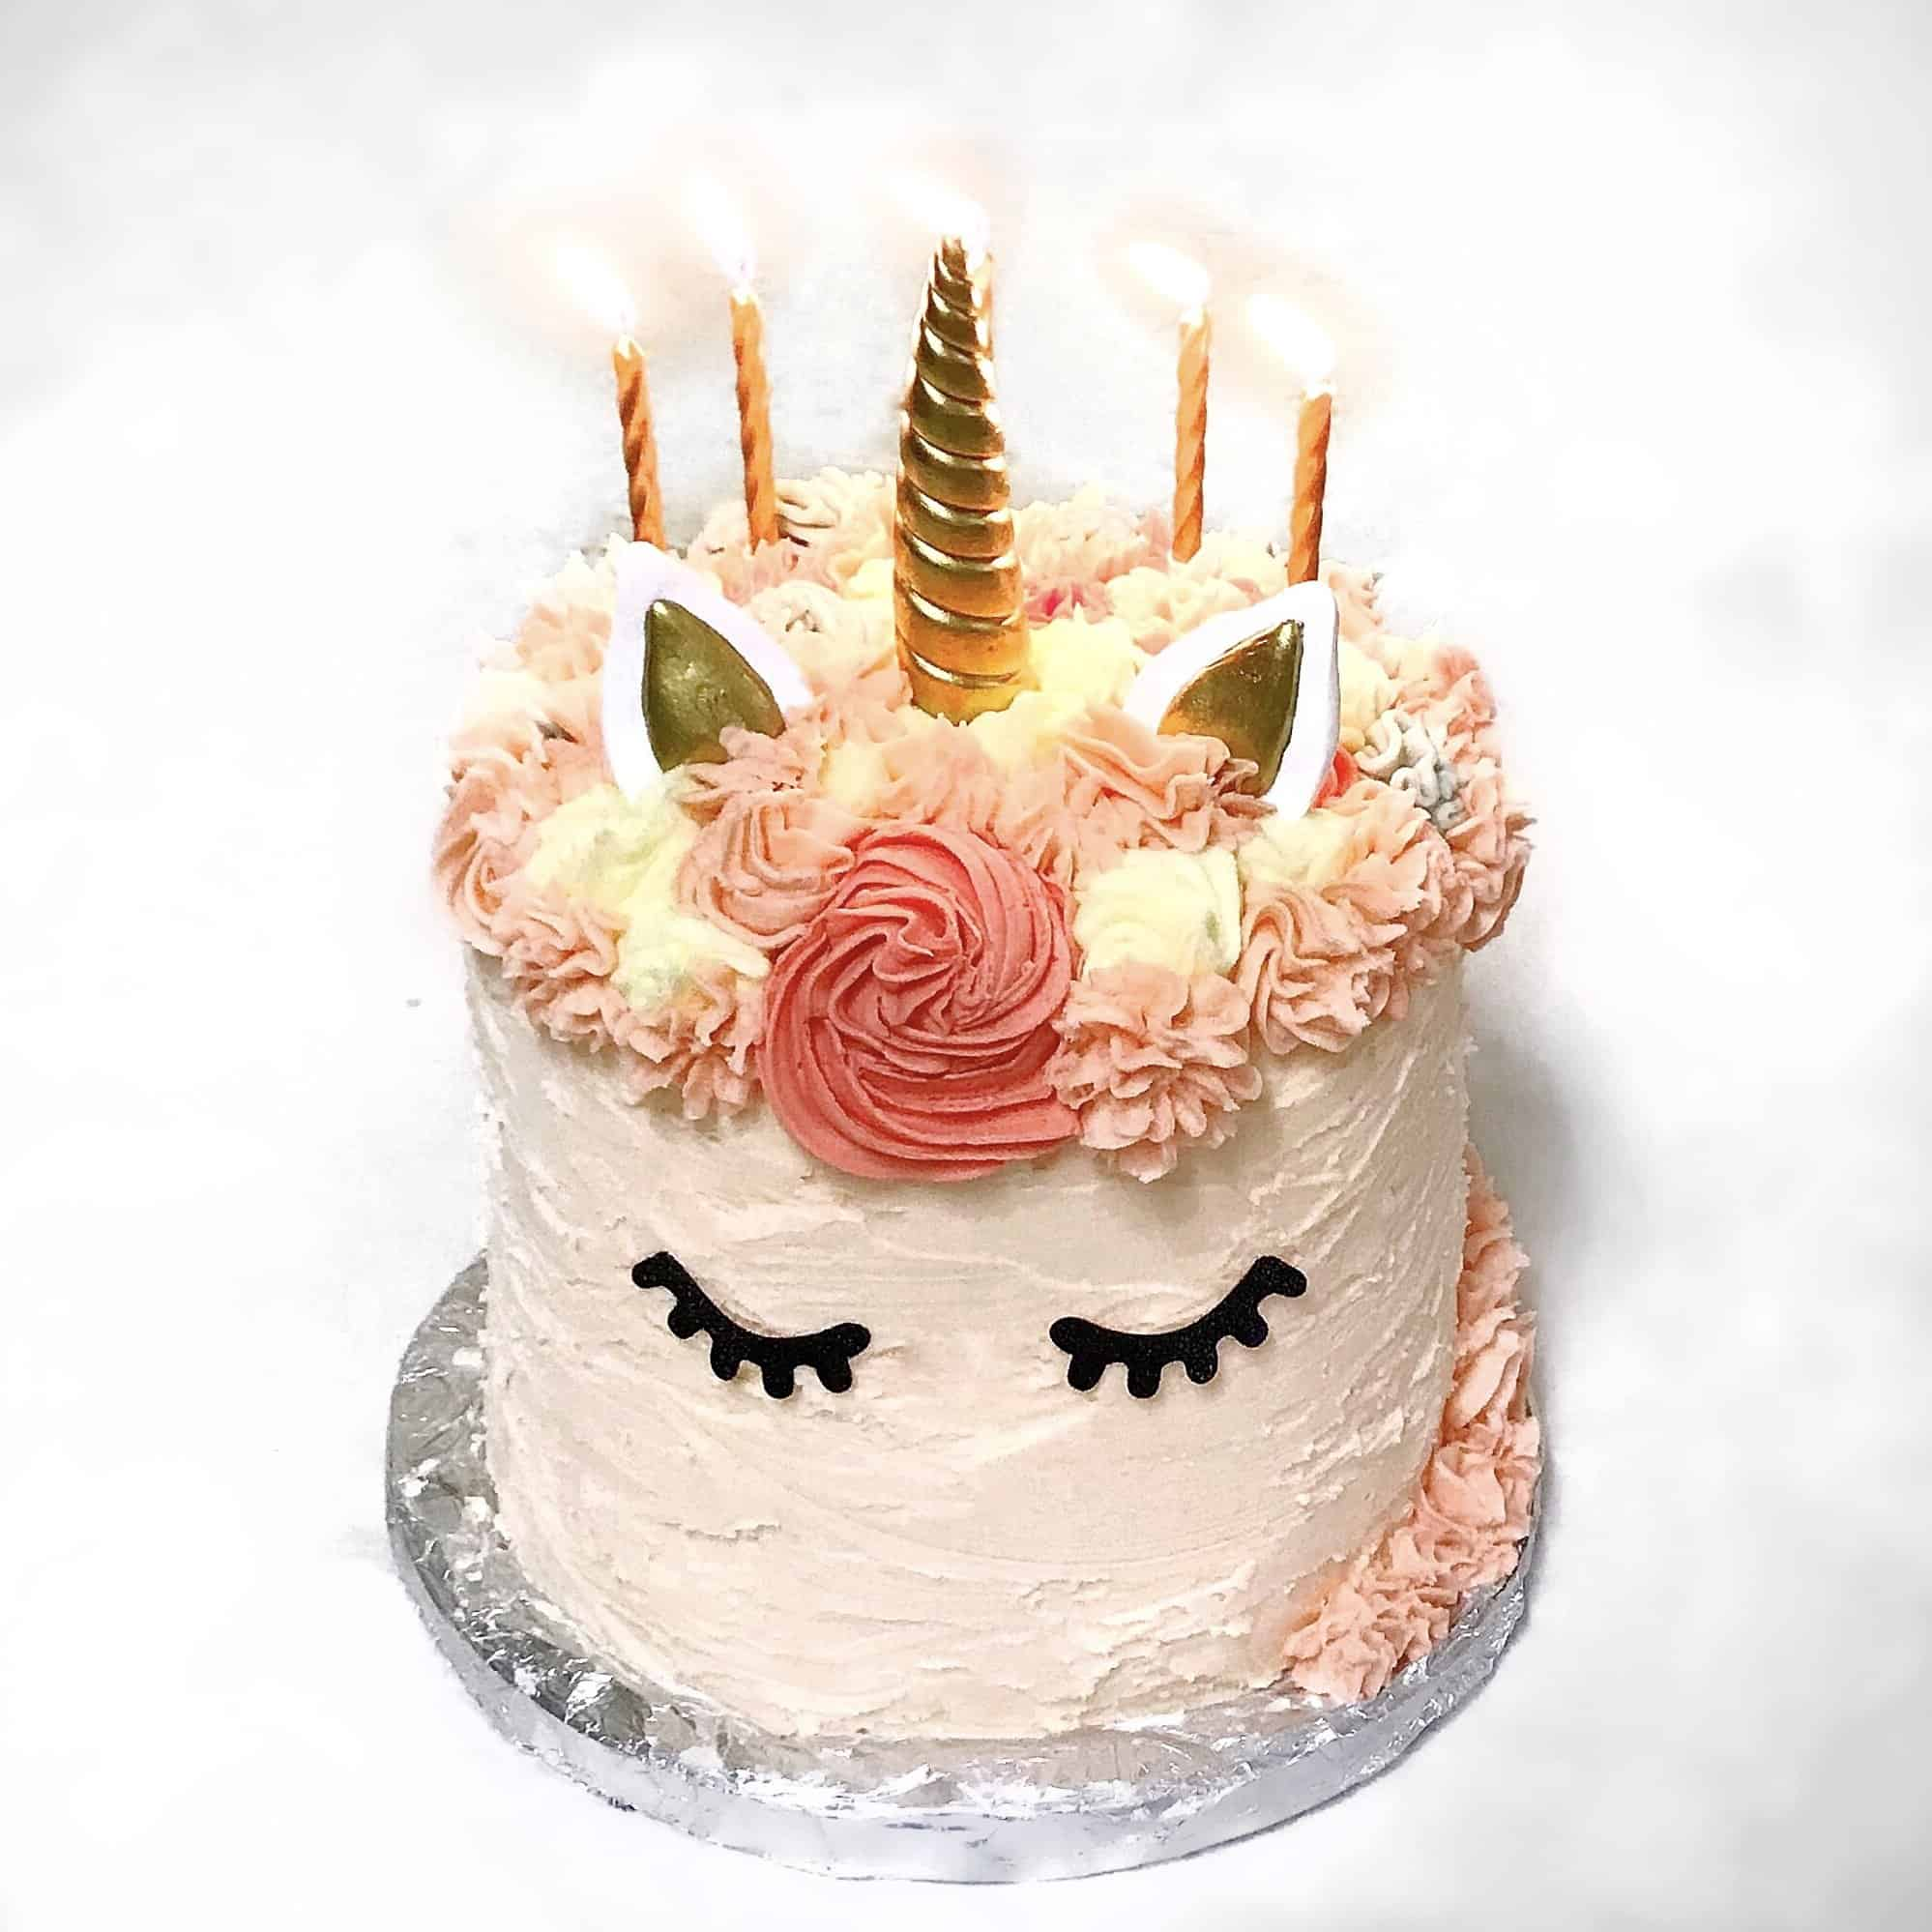 Rainbow Unicorn Cake with gold candles